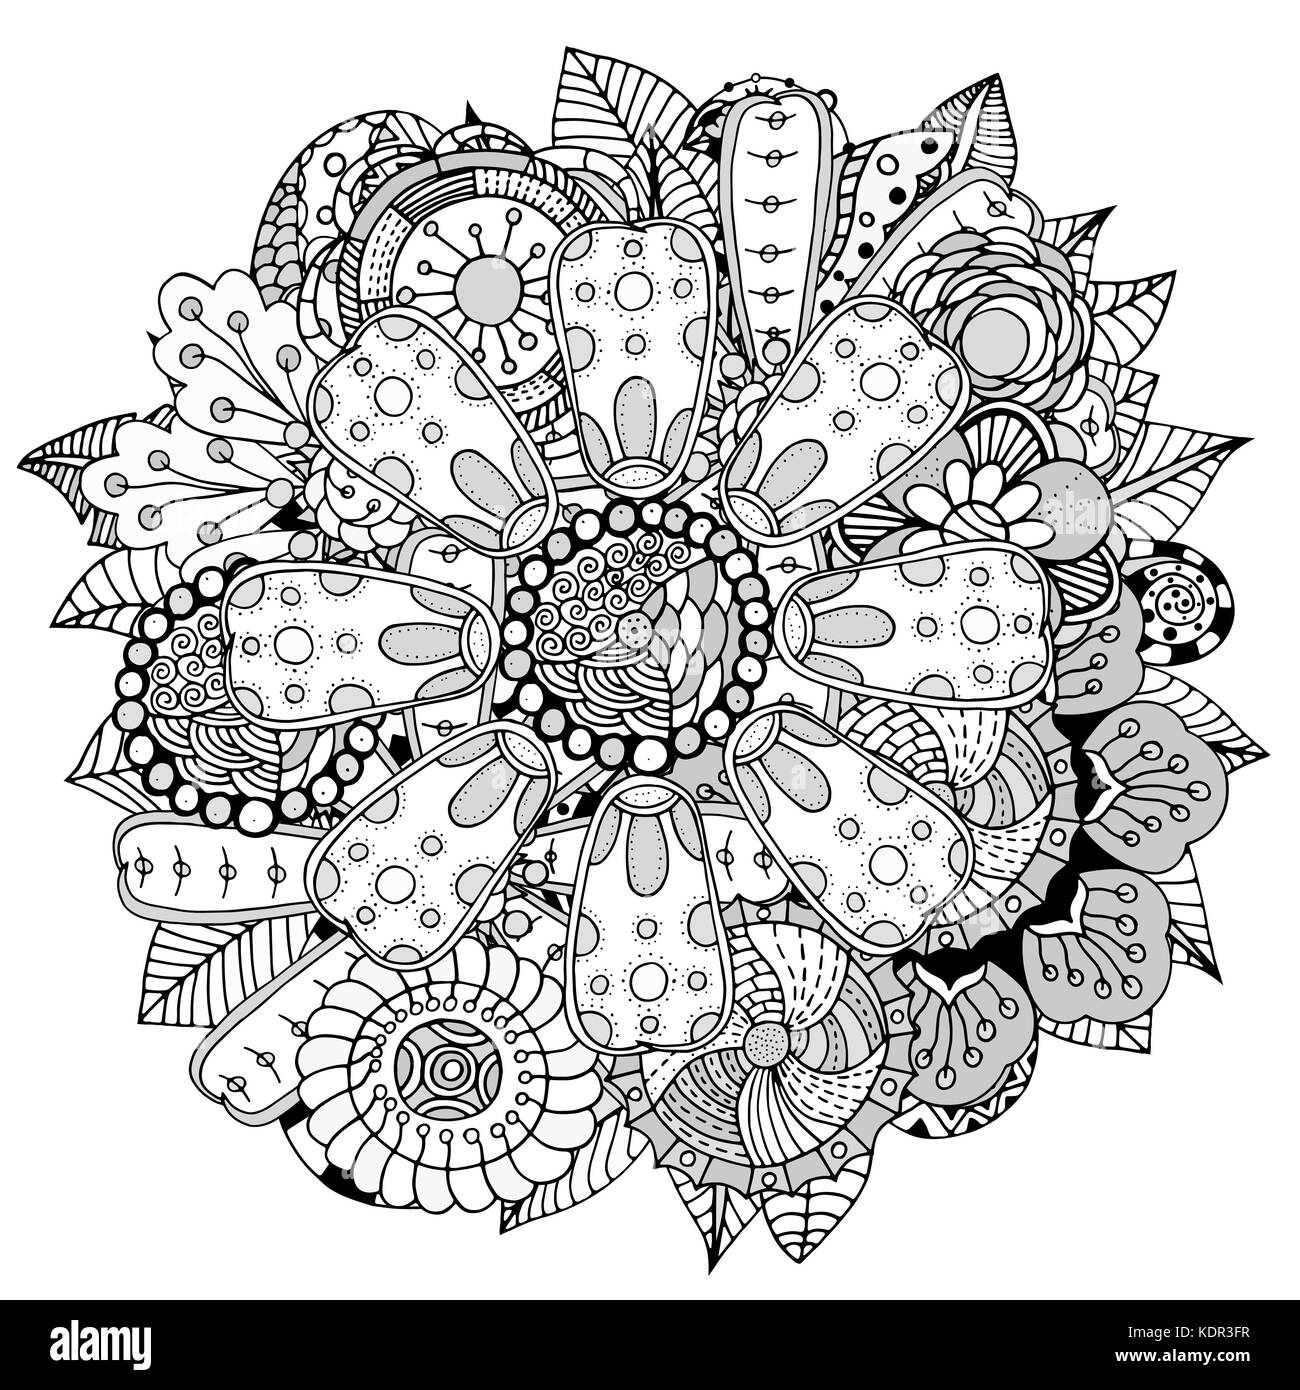 Six Black Flower Design Stock Images: Black And White Circle Flower Ornament, Ornamental Round